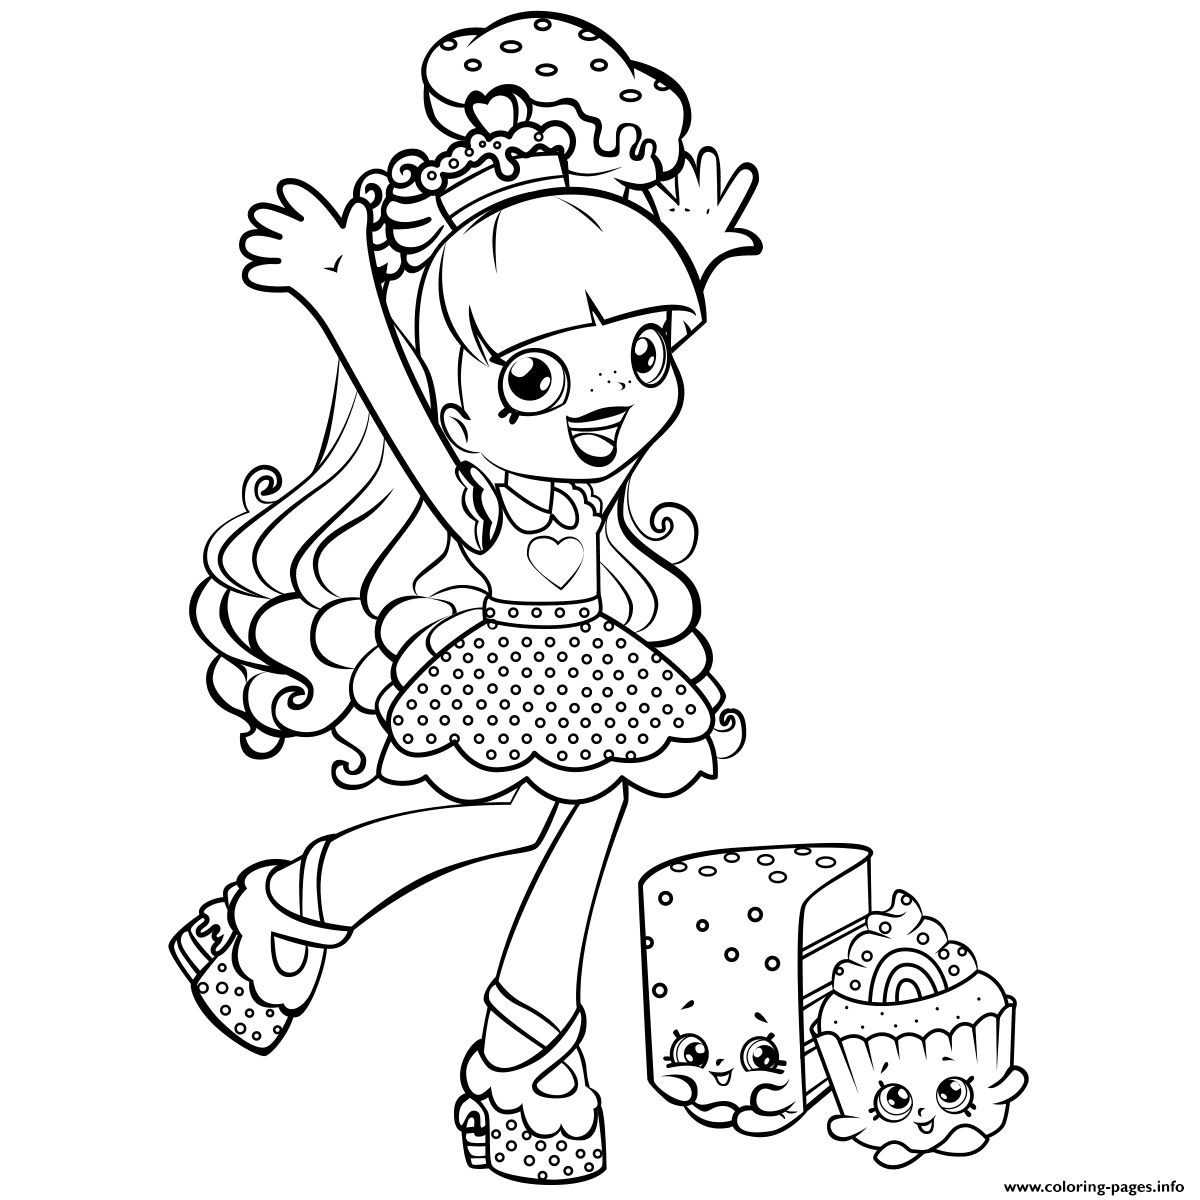 shopkins-coloring-page-0027-q1